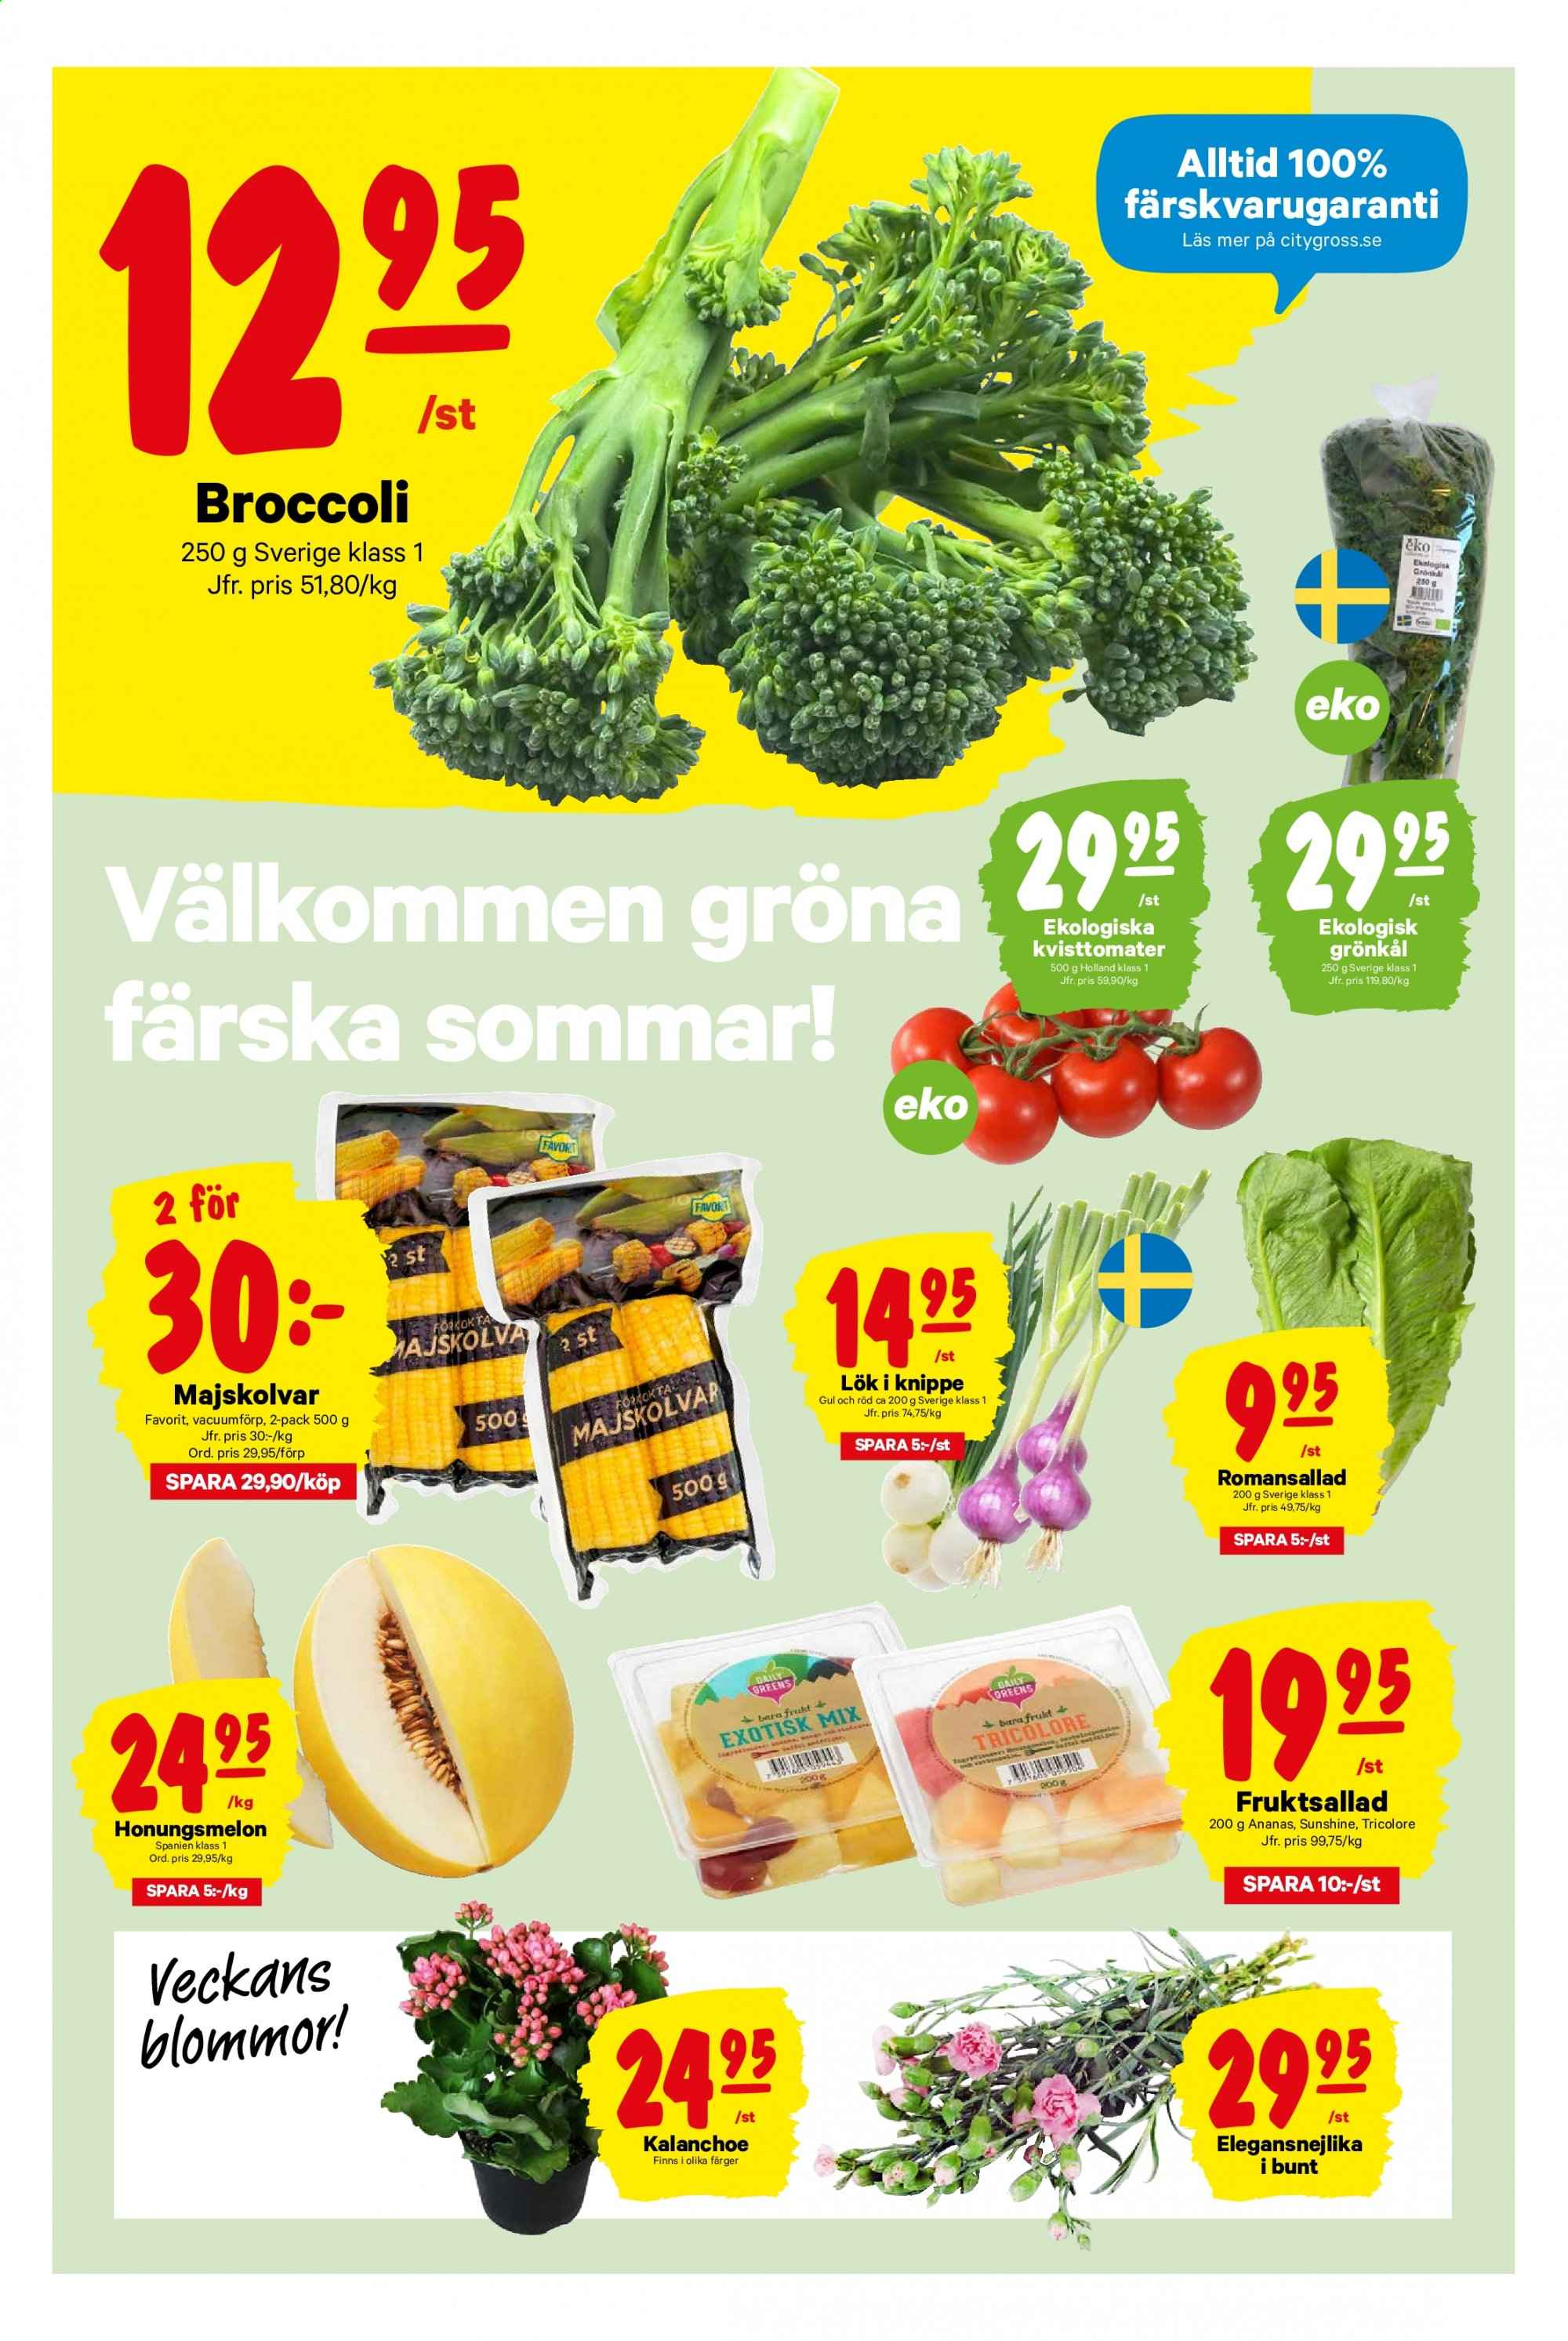 City Gross reklamblad - 8/7 2019 - 14/7 2019. Sida 4.